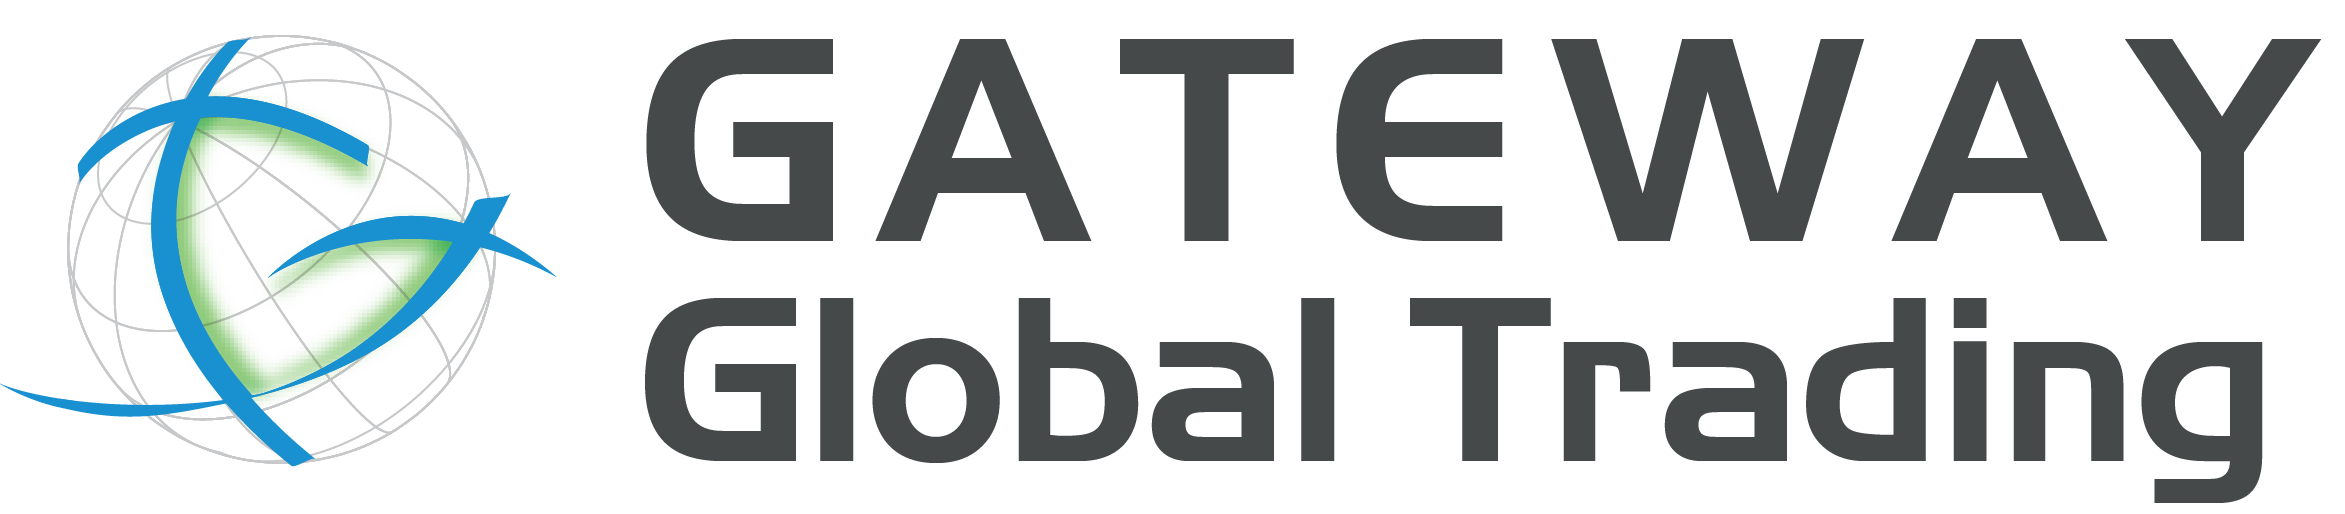 Gateway Global Trading